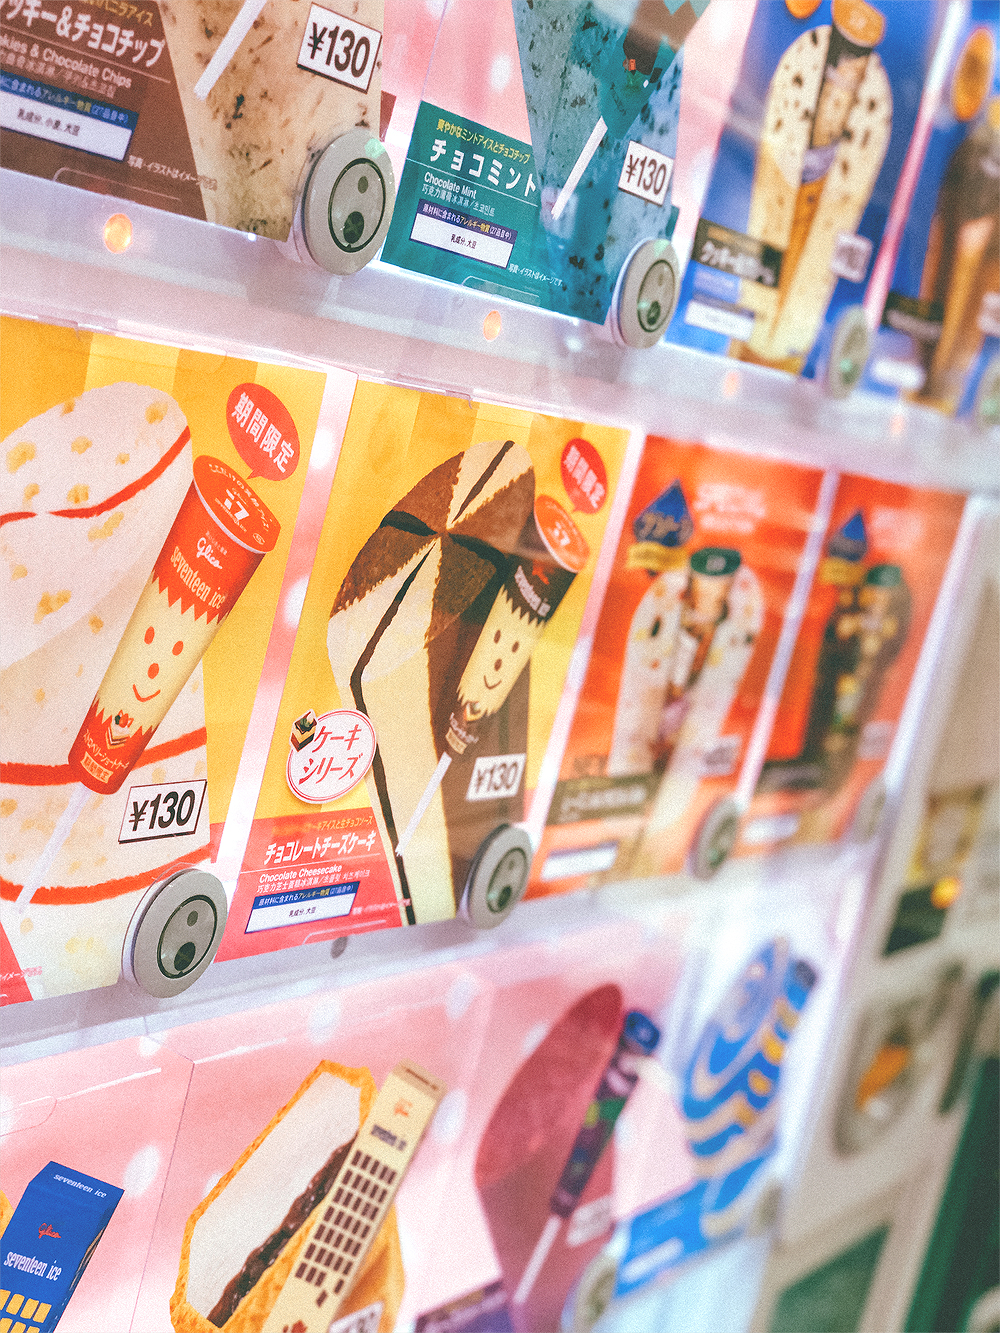 While waiting at Maihama station, I really wanted to devour one of these ice cream treats. I can't believe Japanese vending machines are better than some American restaurants.¯\_(ツ)_/¯